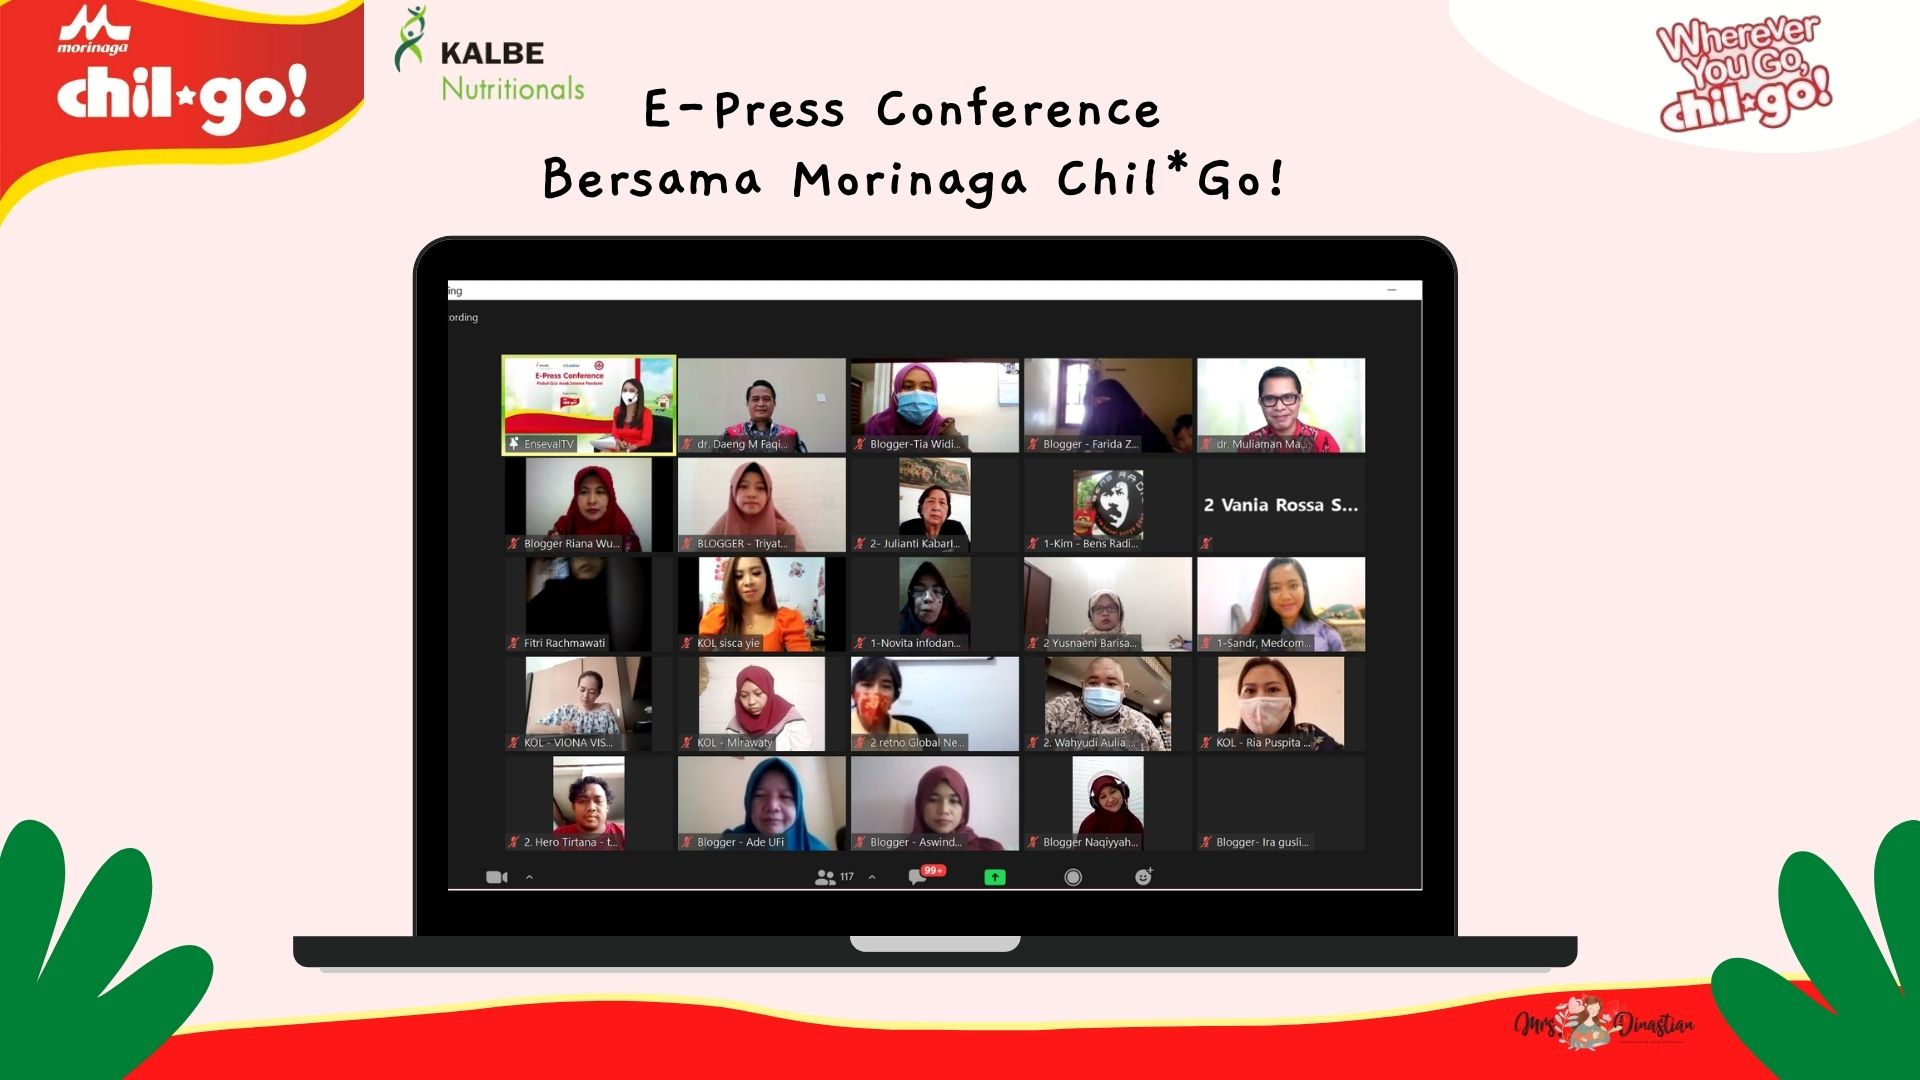 E-Press Conference Bersama Morinaga Chil*Go